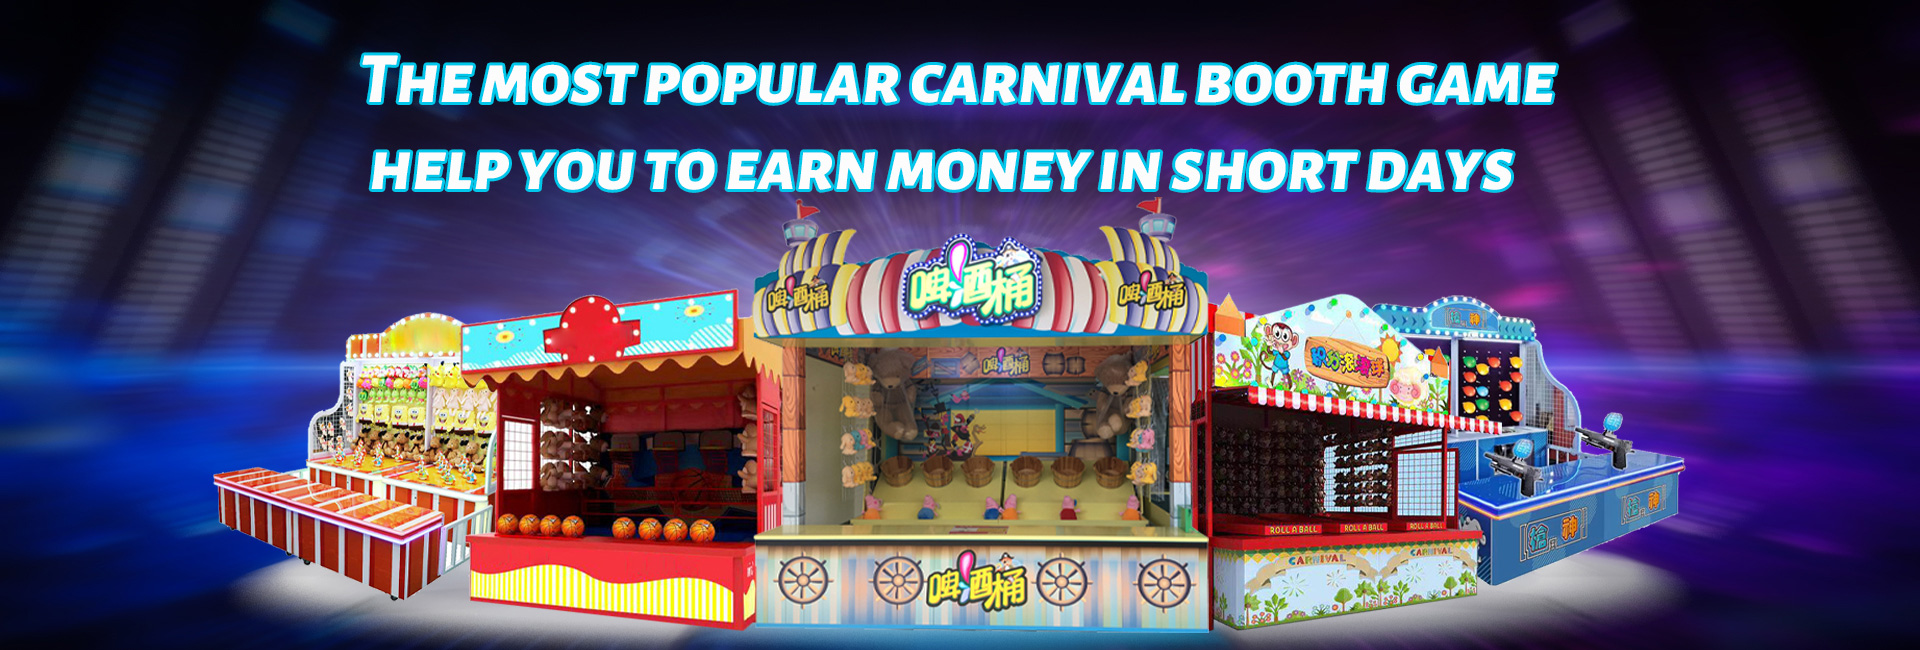 CARNIVAL-BOOTH-GAME-YUTO-GAMES